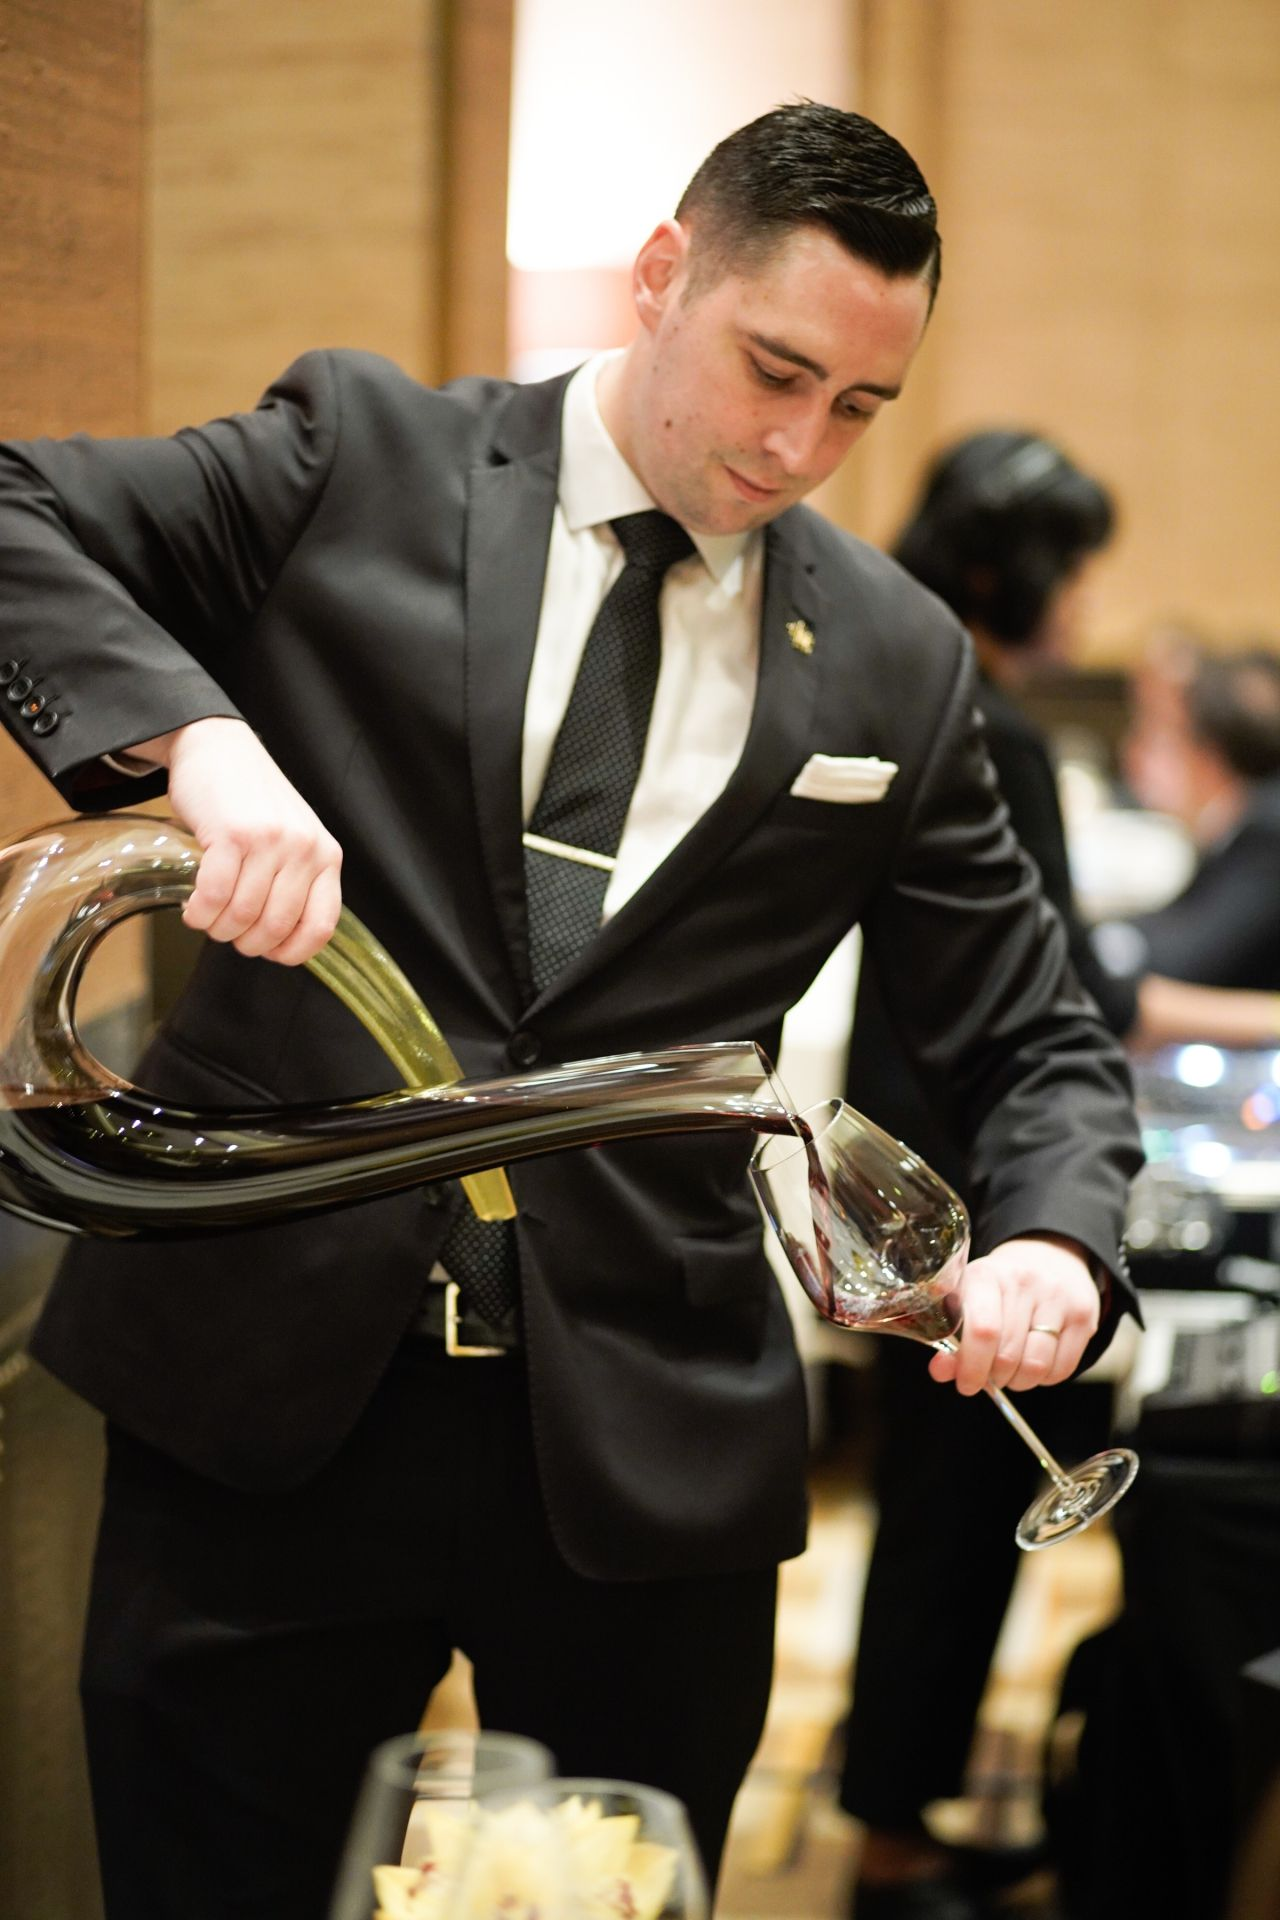 Stephen Moroney, Restaurant Manager - The Tasting Room